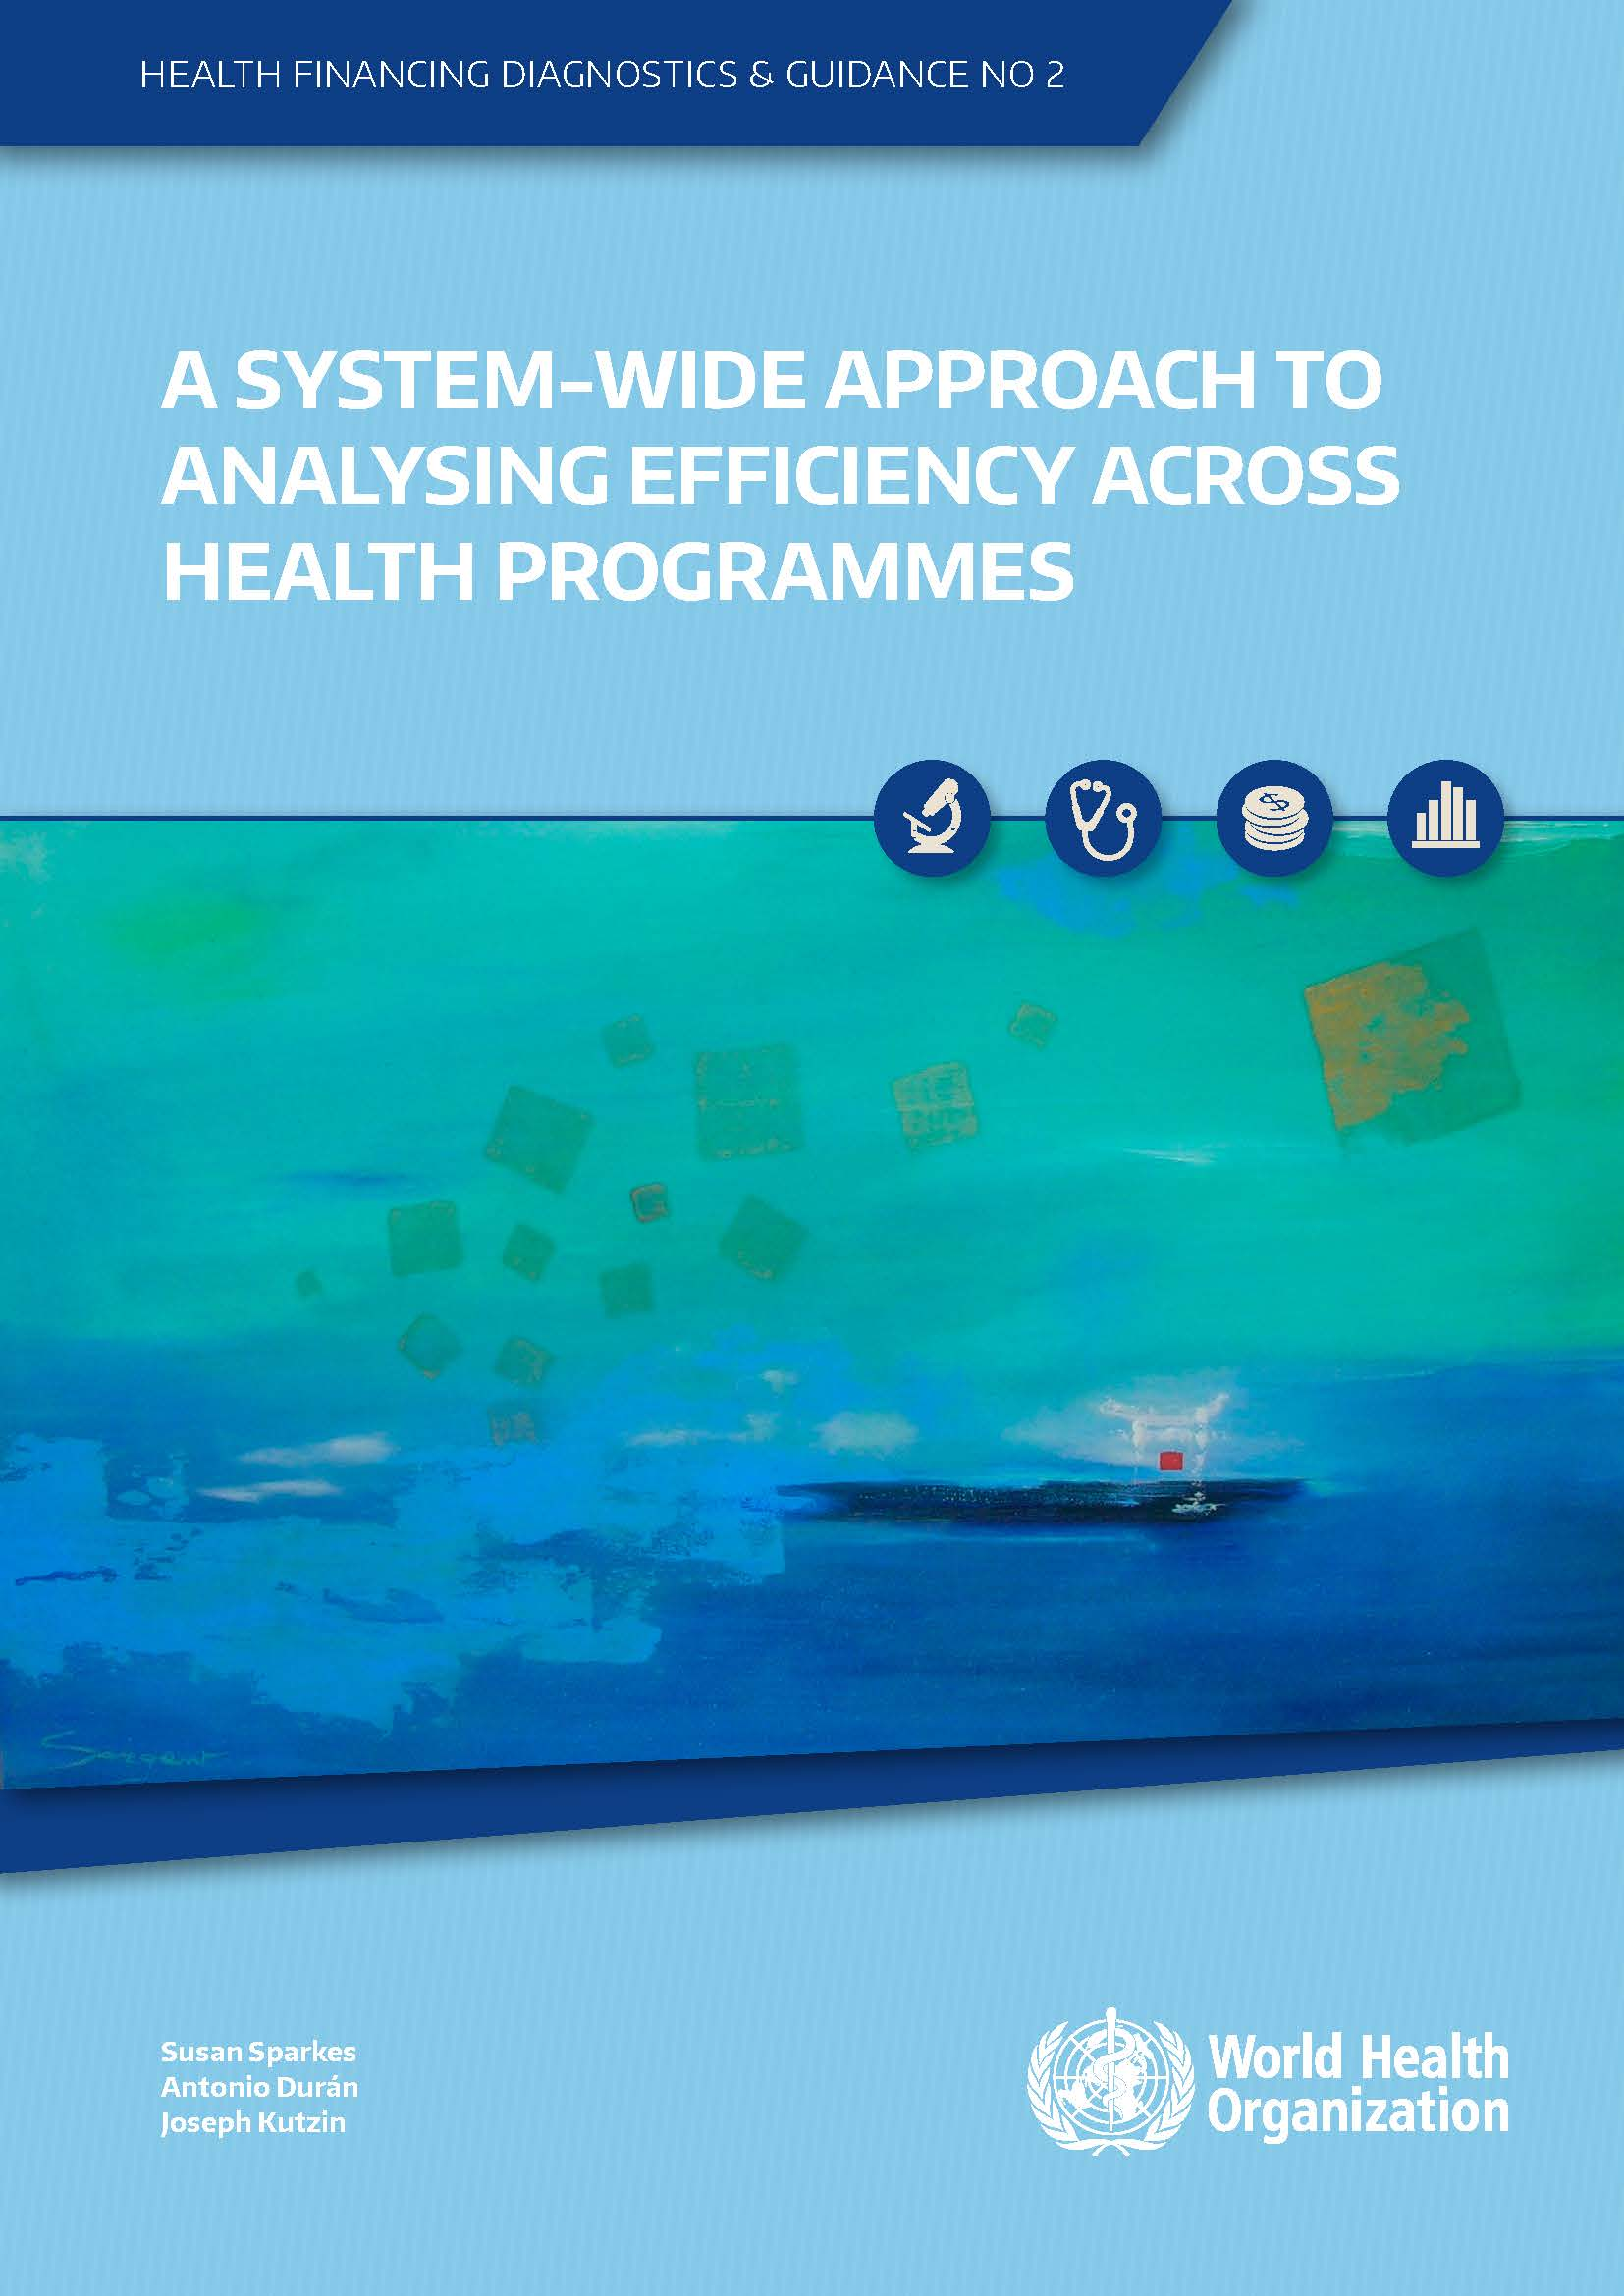 A system-wide approach to analysing efficiency across health programmes